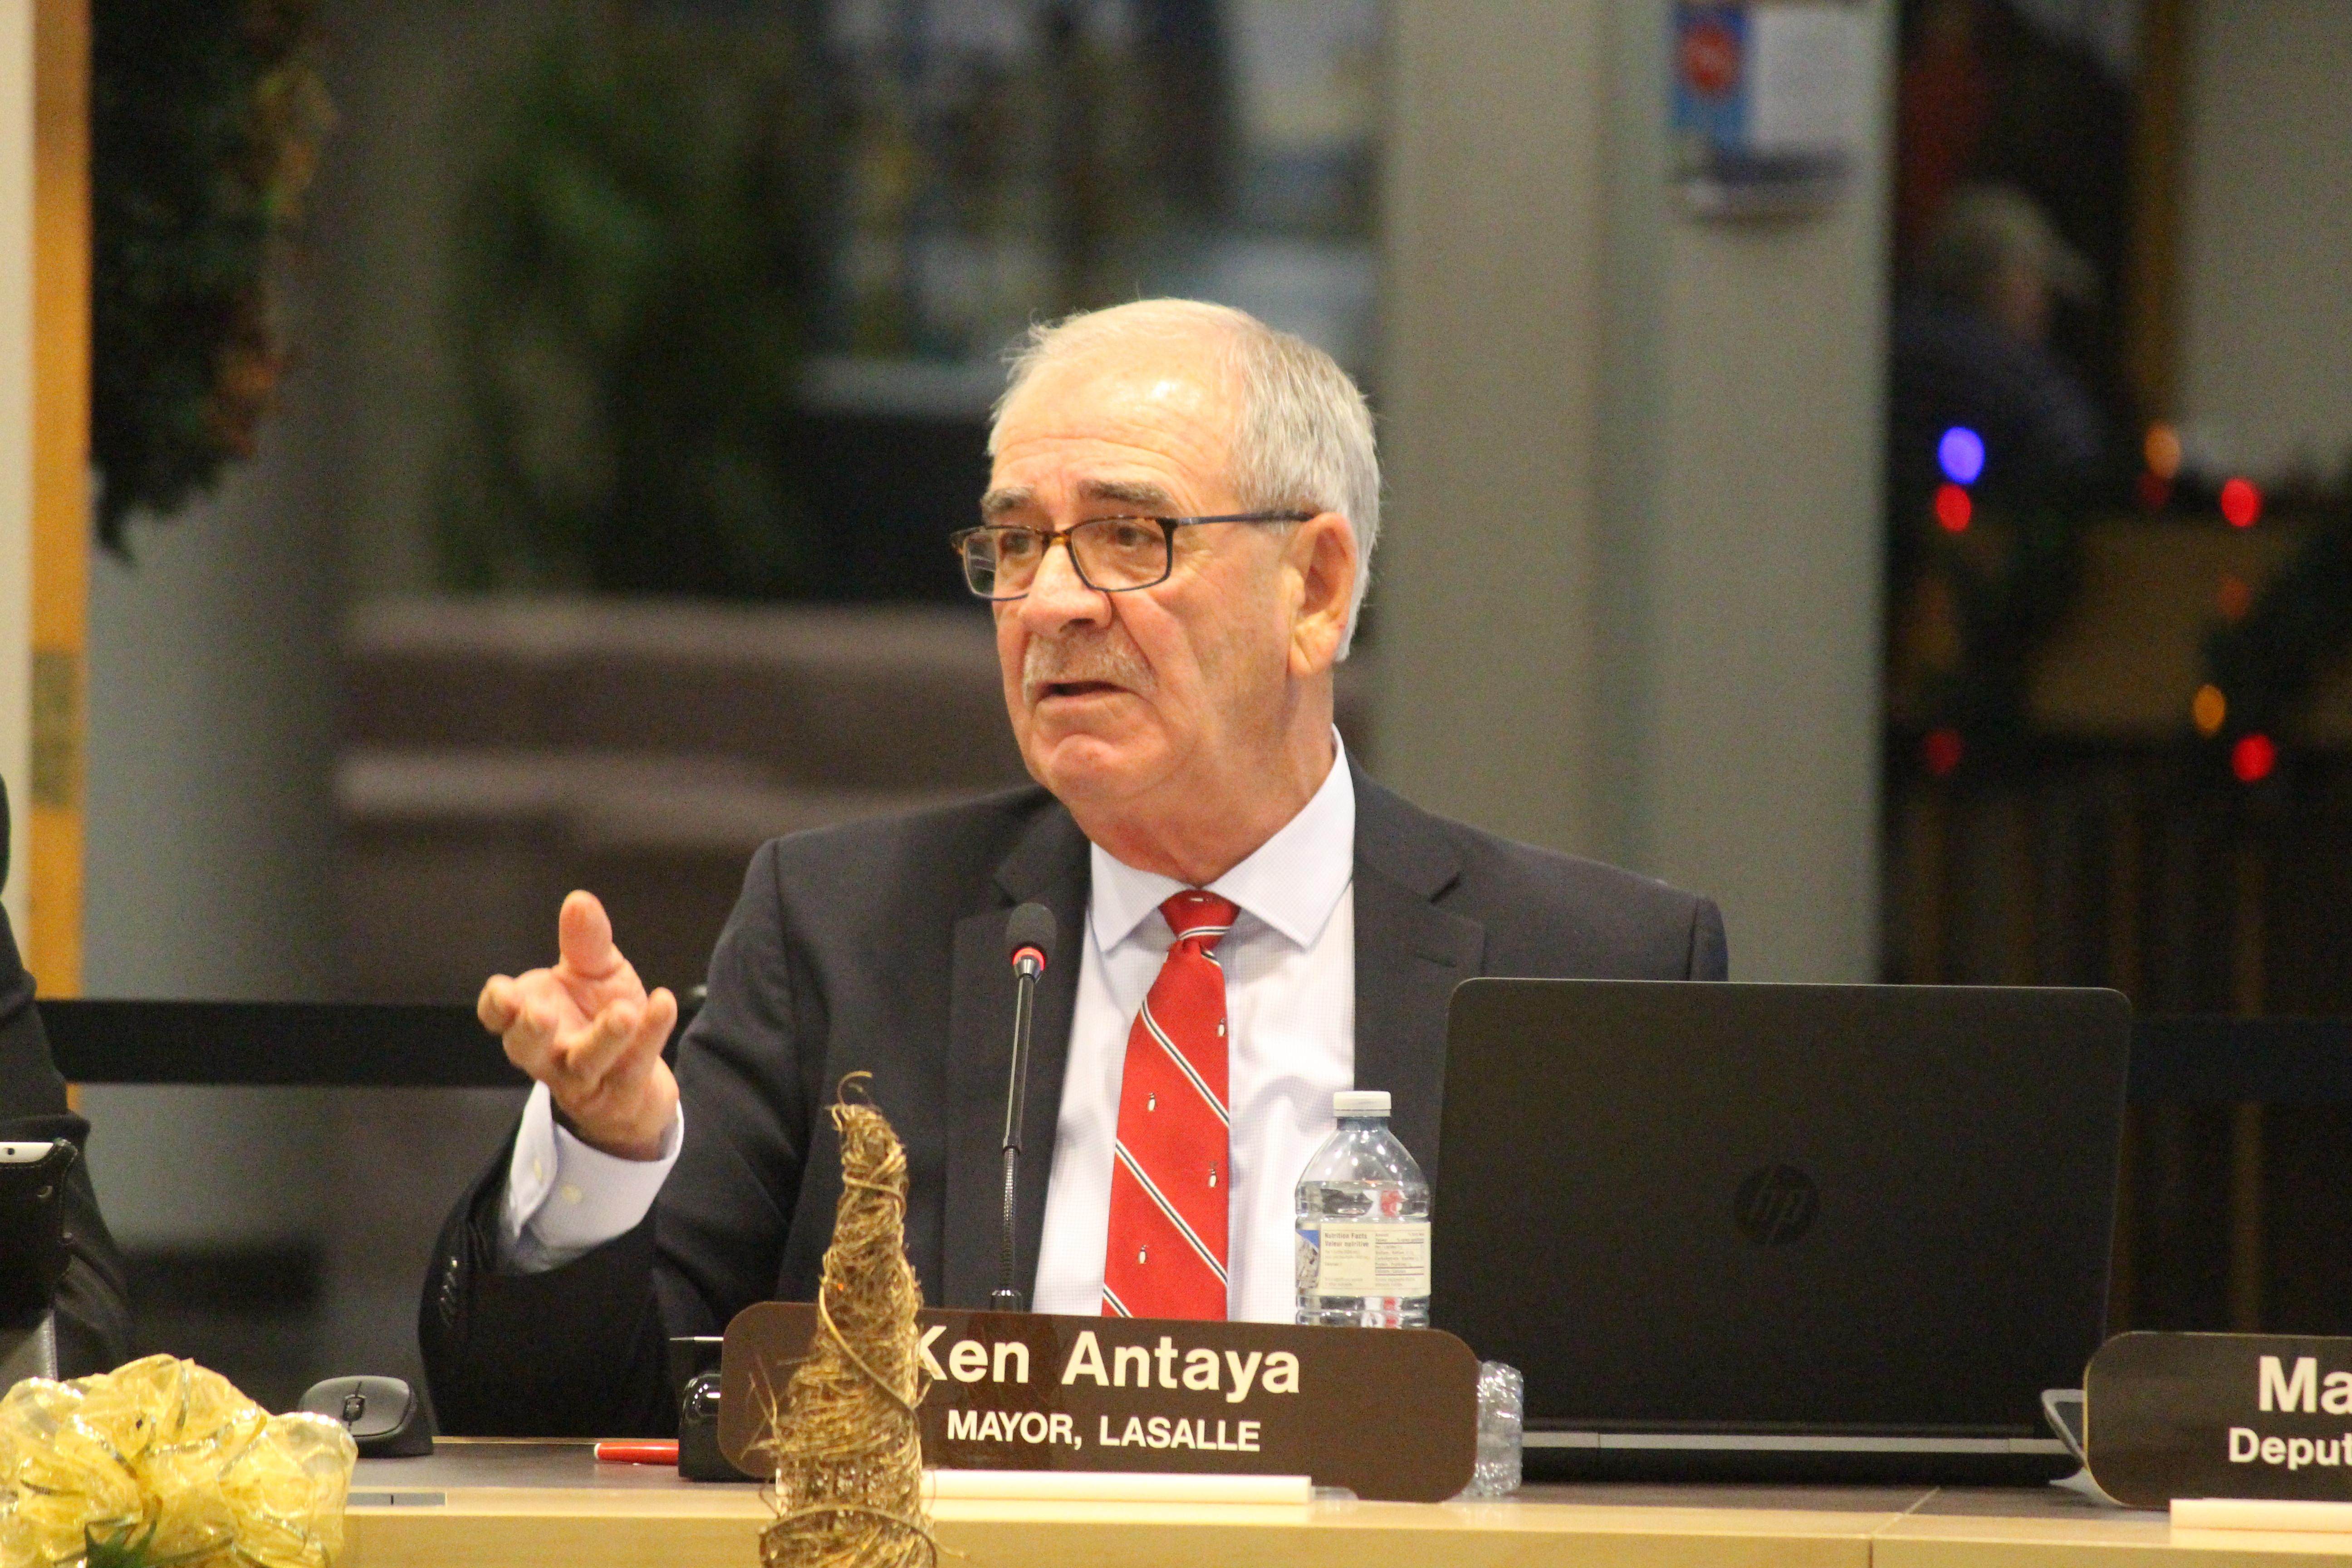 LaSalle Mayor Ken Antaya is seen at the regular council meeting for the County of Essex where the proposed 2017 budget for the Essex-Windsor Solid Waste Authority is discussed on December 7, 2016. (Photo by Ricardo Veneza)